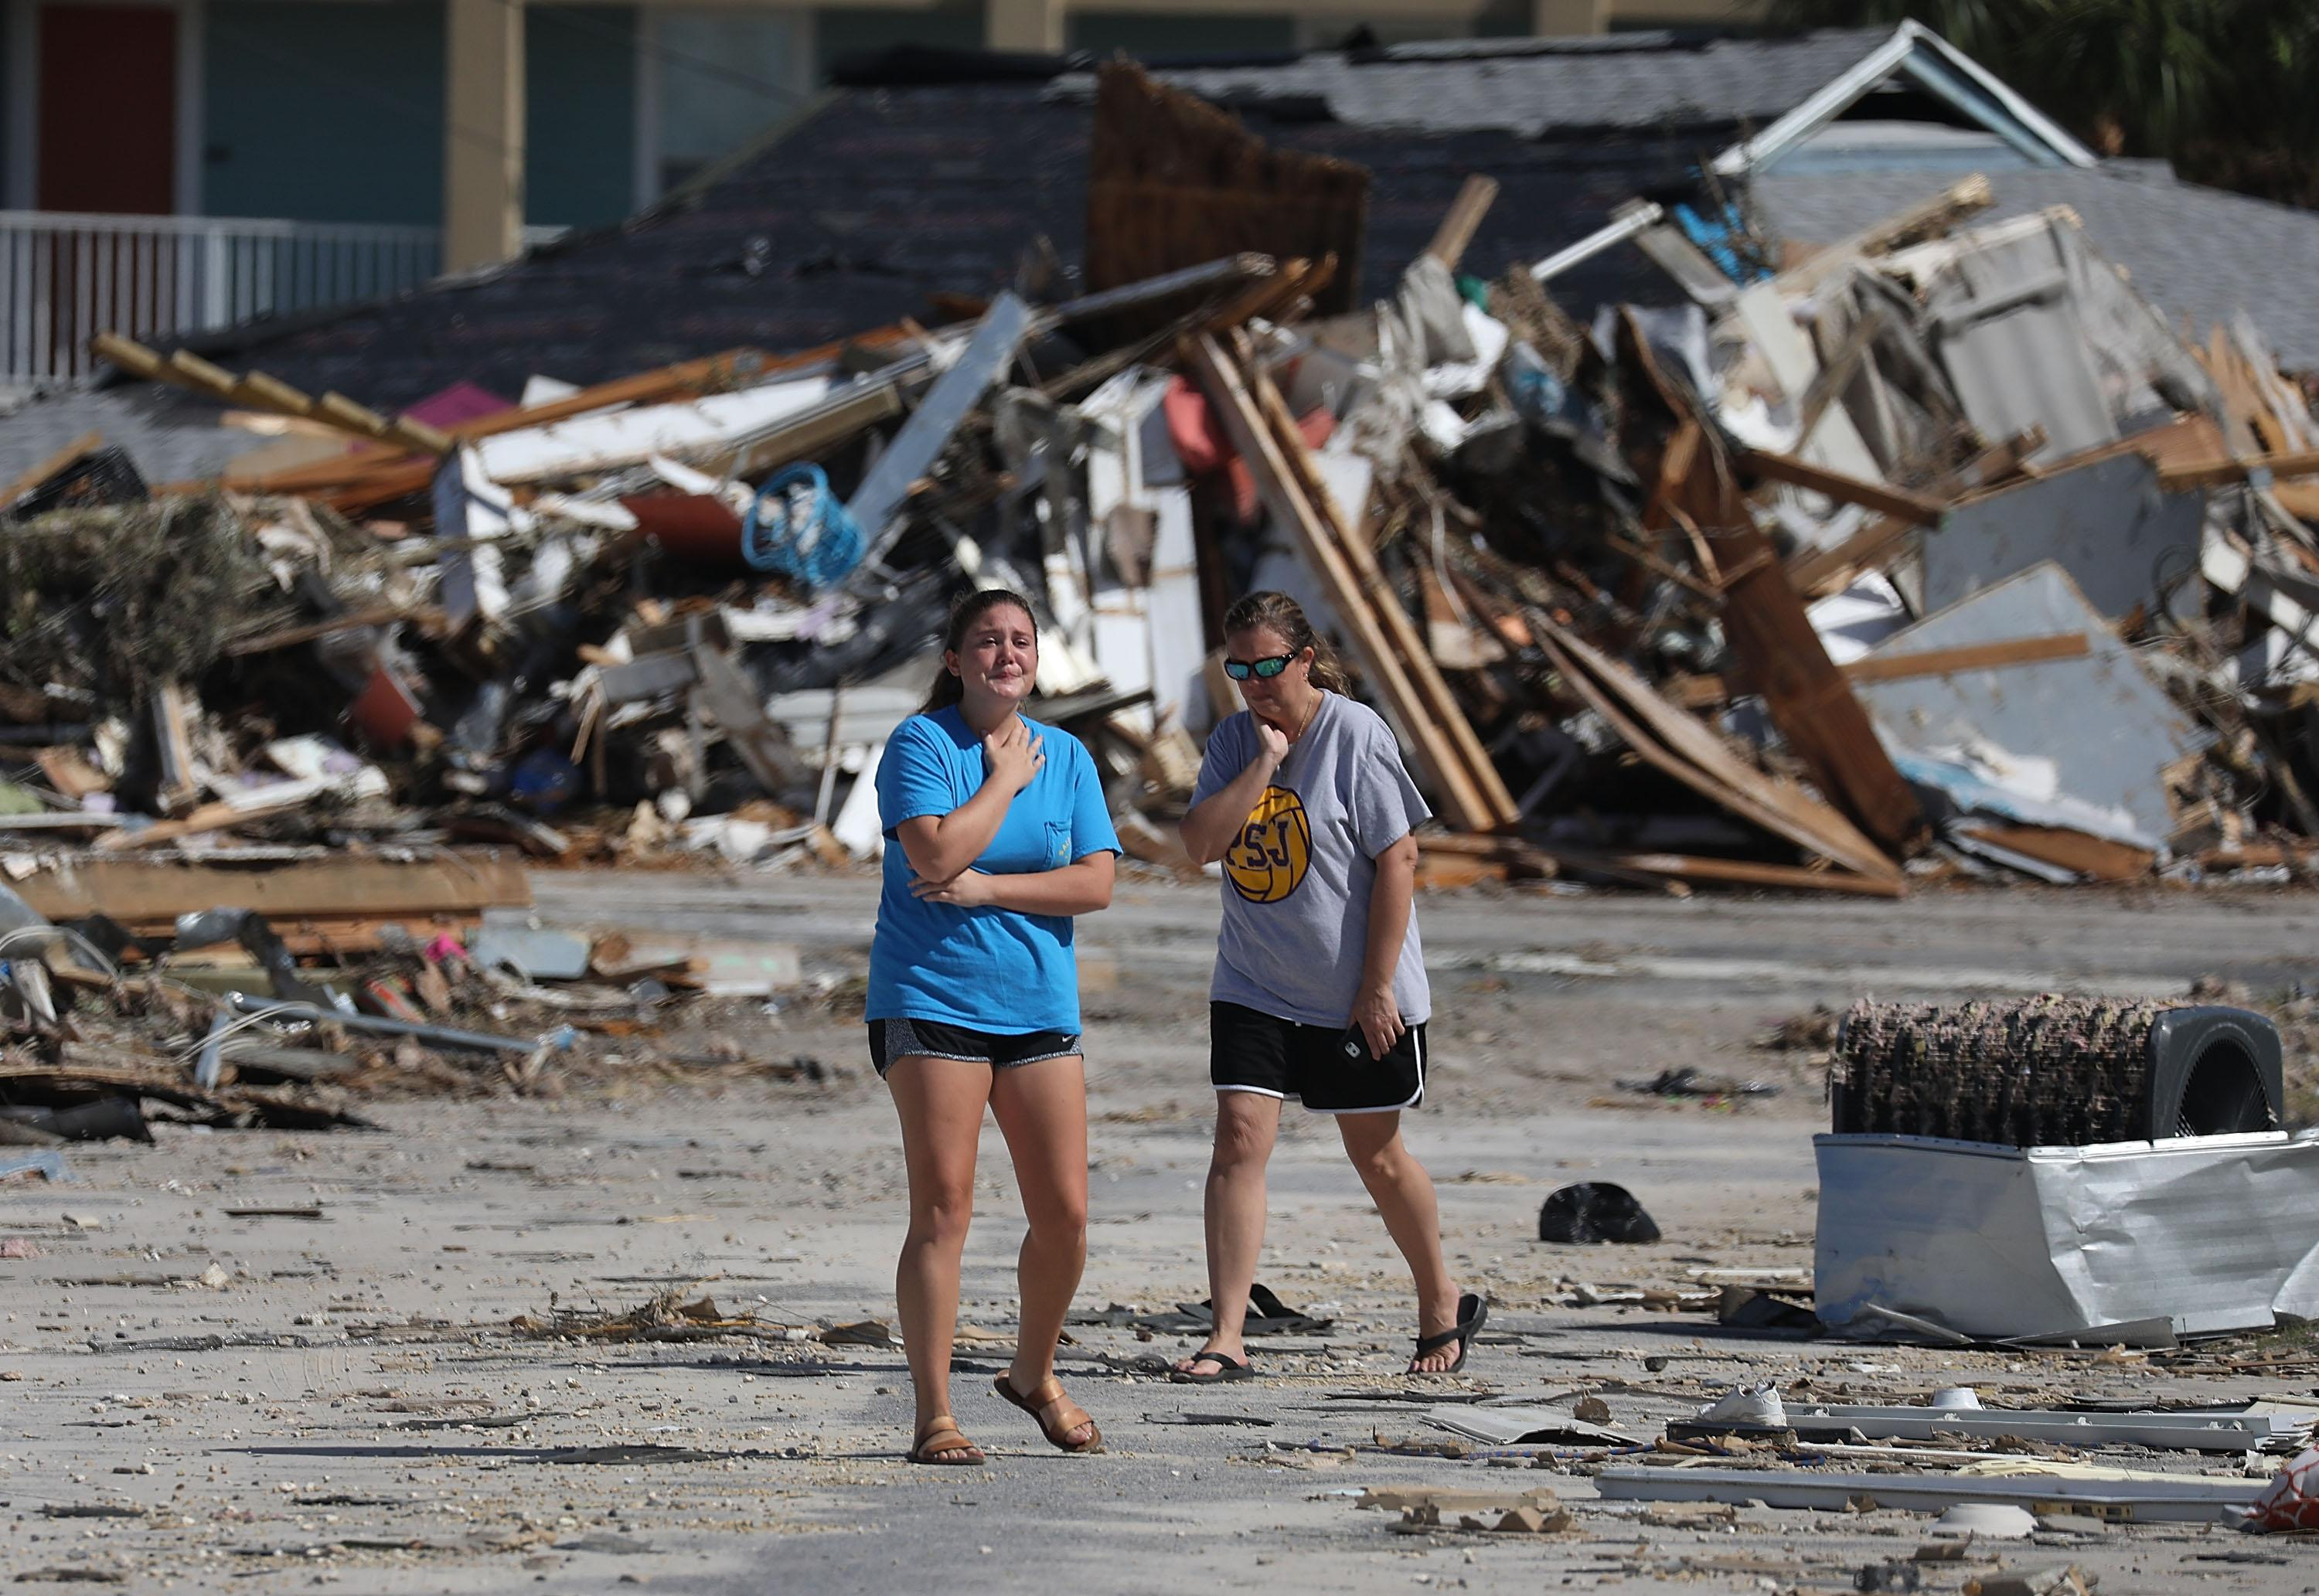 Two women in T-shirts and flip-flops appear upset as they stand before the wreckage of a house.